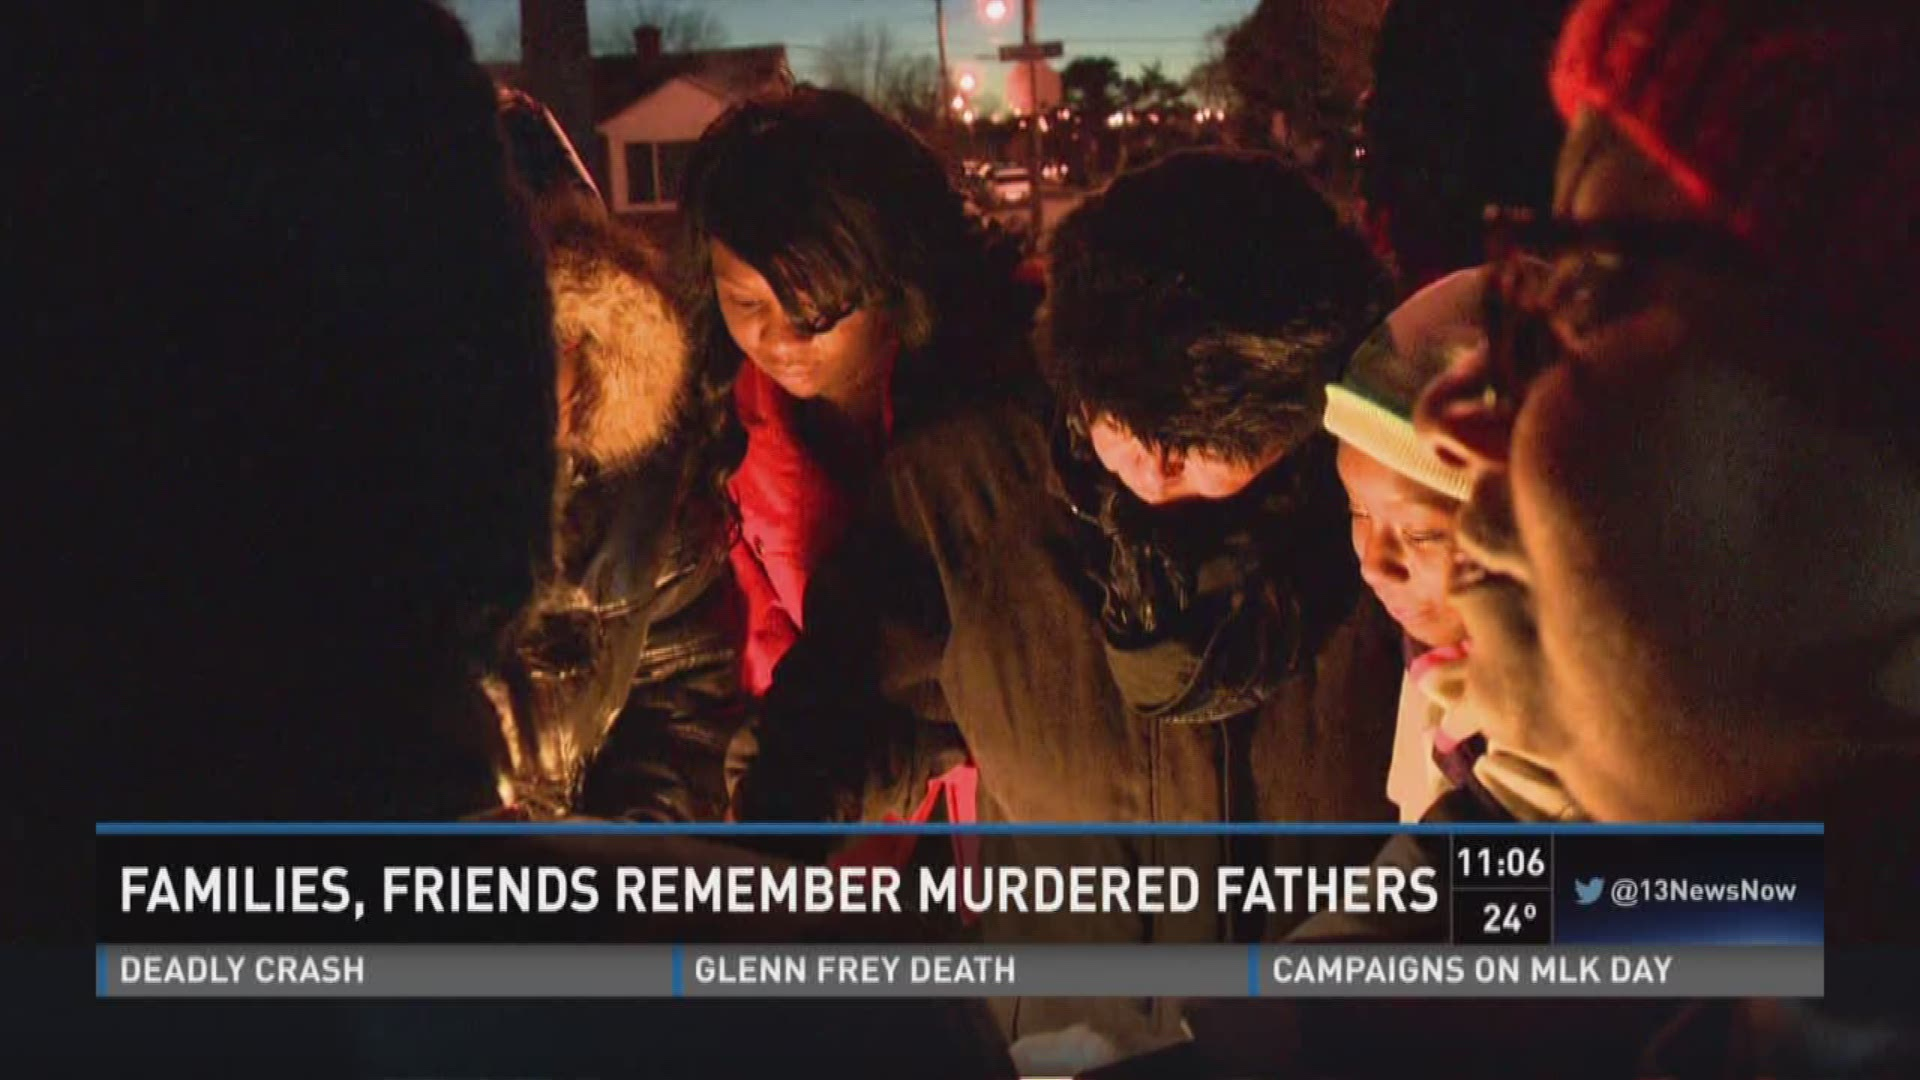 Family, friends remember murdered fathers